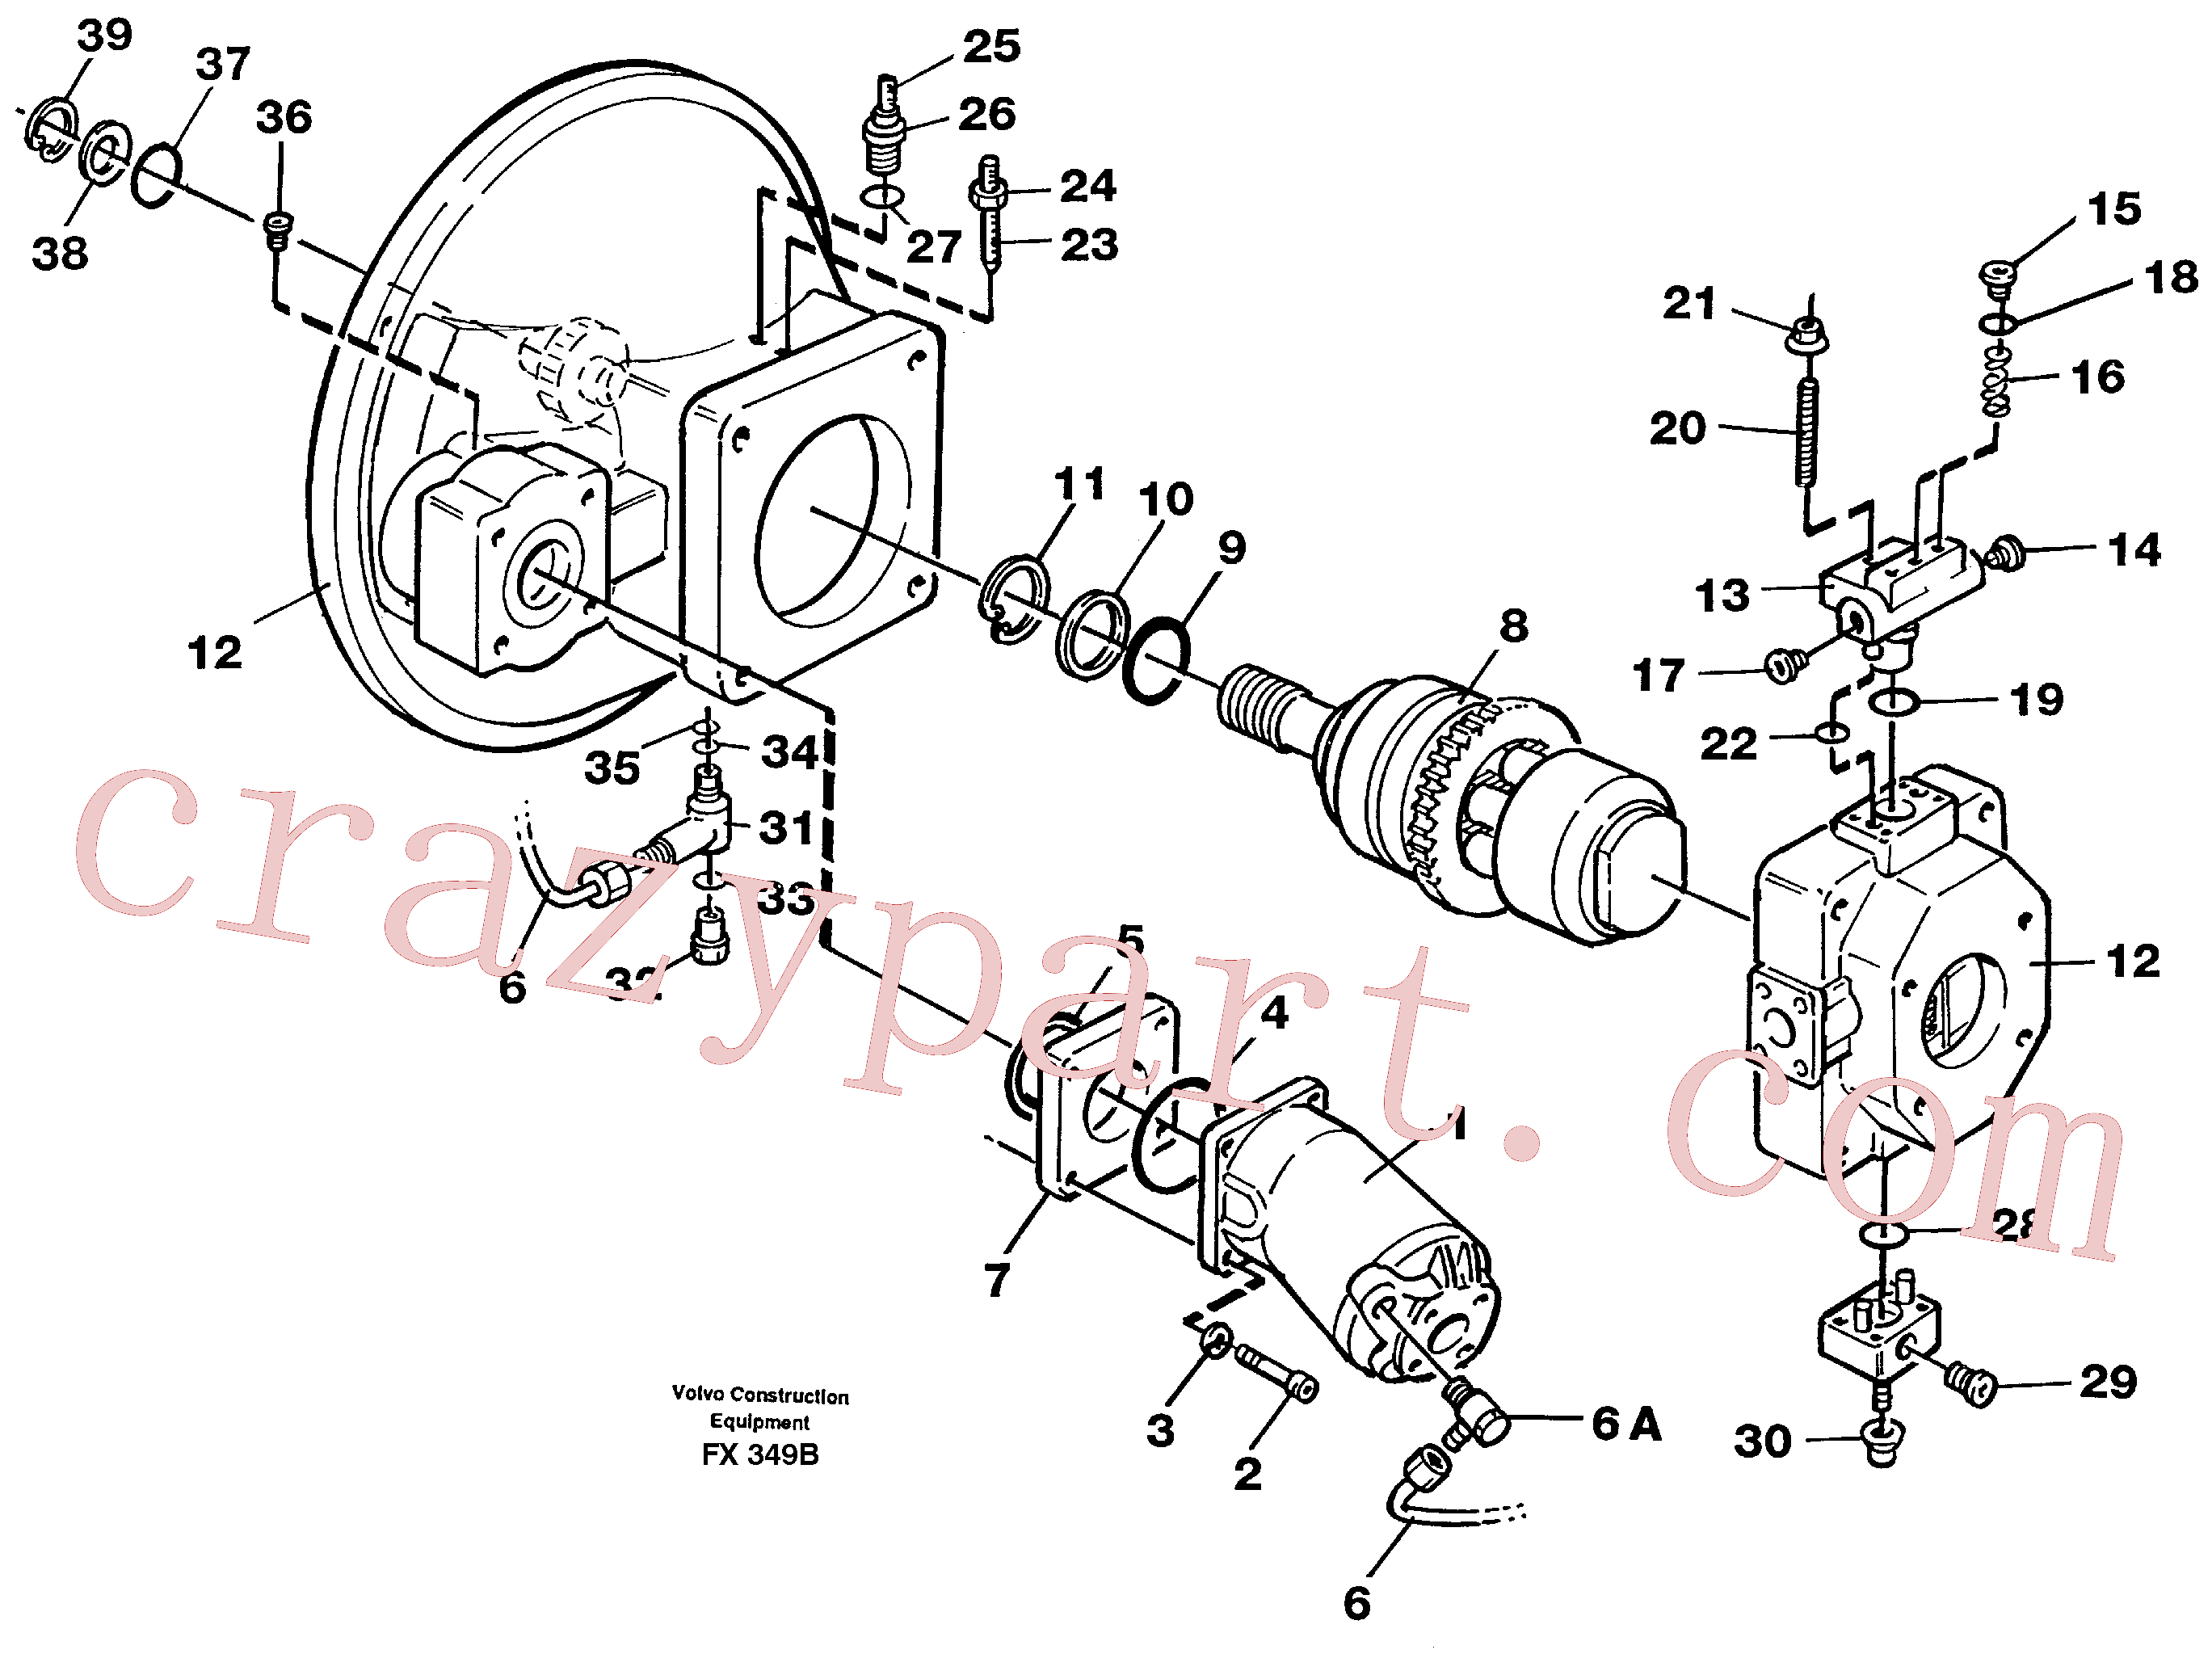 VOE11701785 for Volvo Pump gear box(FX349B assembly)